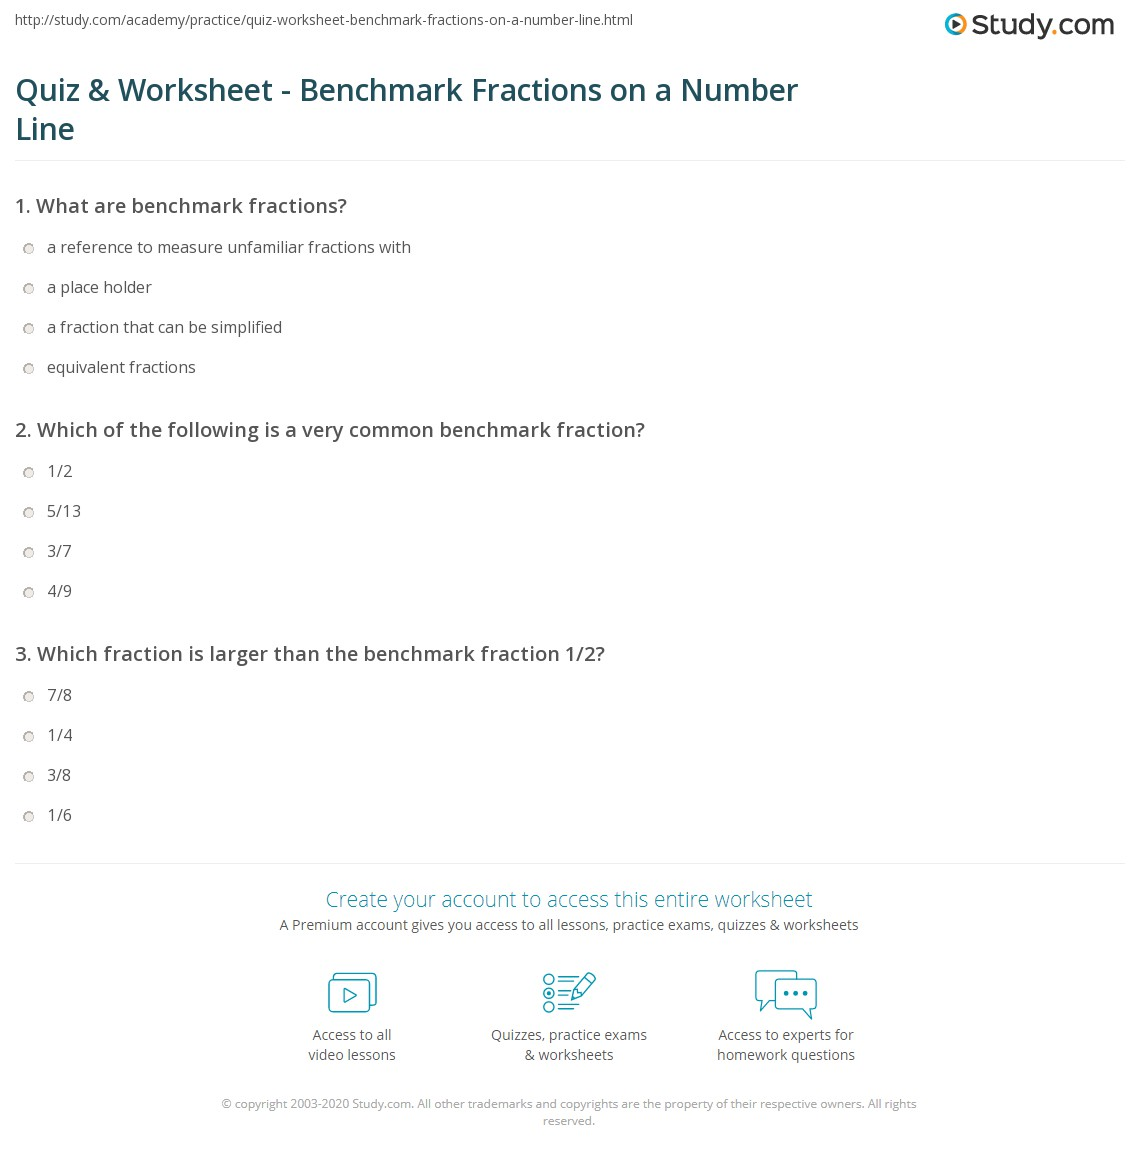 Quiz & Worksheet - Benchmark Fractions on a Number Line | Study.com